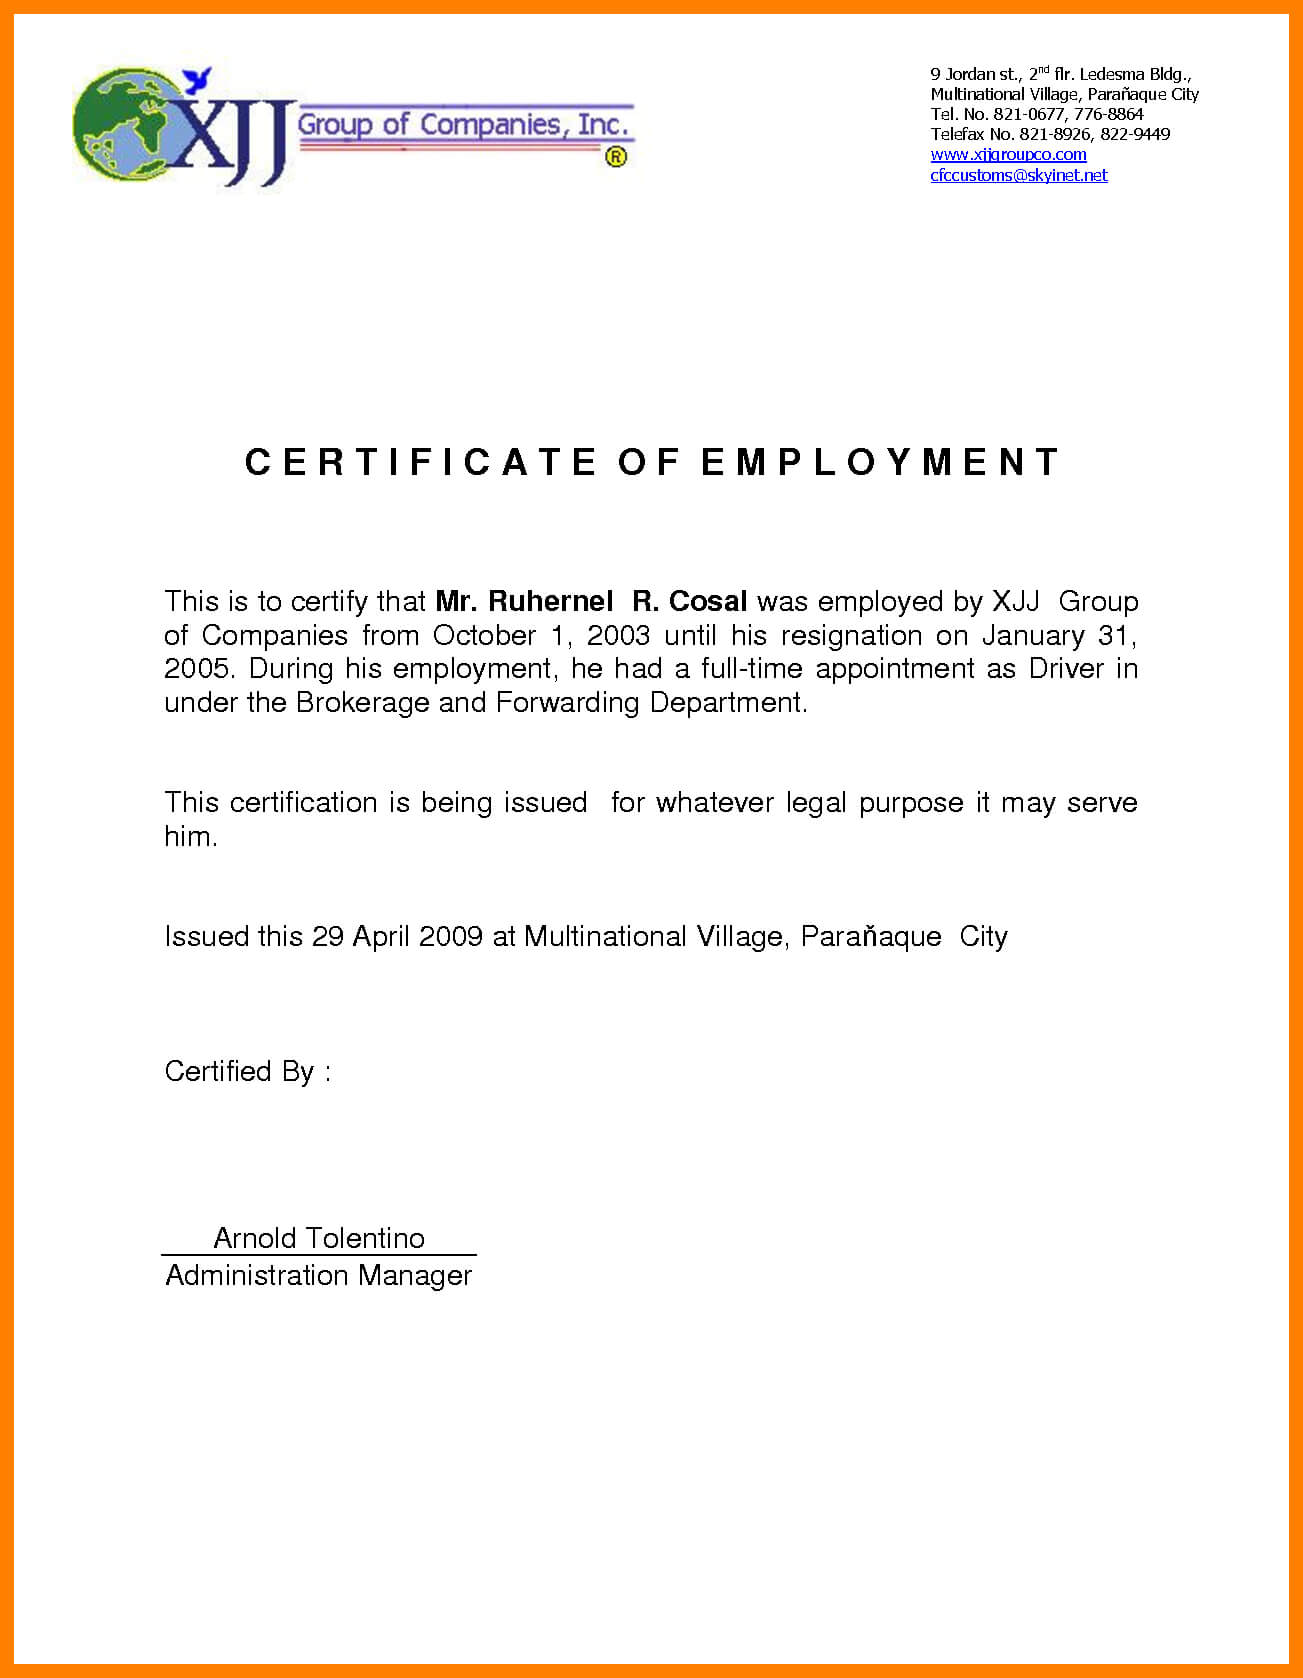 Sample For Certificate Of Employment - Tunu.redmini.co Intended For Certificate Of Employment Template